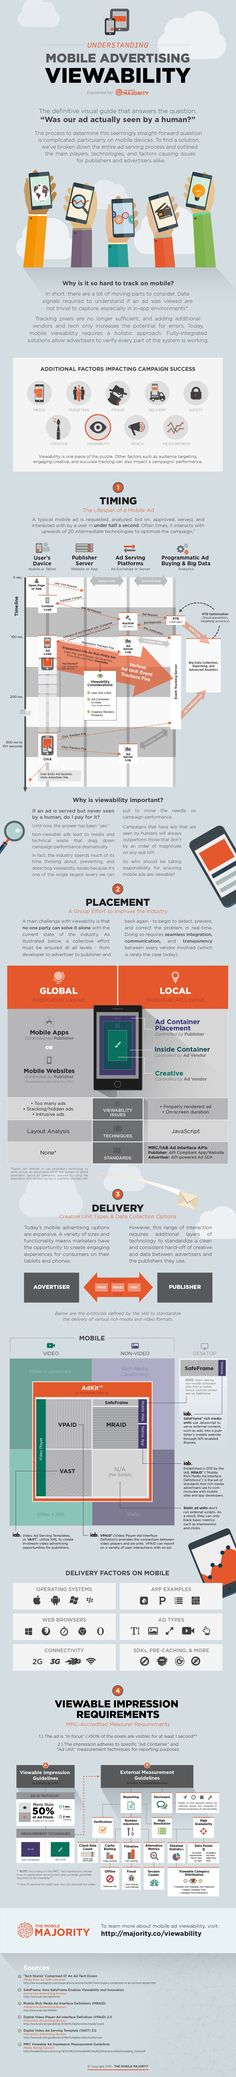 The Mobile Majority, a well known leader of mobile advertising technology, created this unbelievable mobile viewability infographic that educates the digital advertising ecosystem about the many complexities of viewability on mobile devices. Search Advertising, Mobile Advertising, Internet Advertising, Display Advertising, Marketing And Advertising, Advertising Ideas, Marketing Digital, Mobile Marketing, Online Marketing